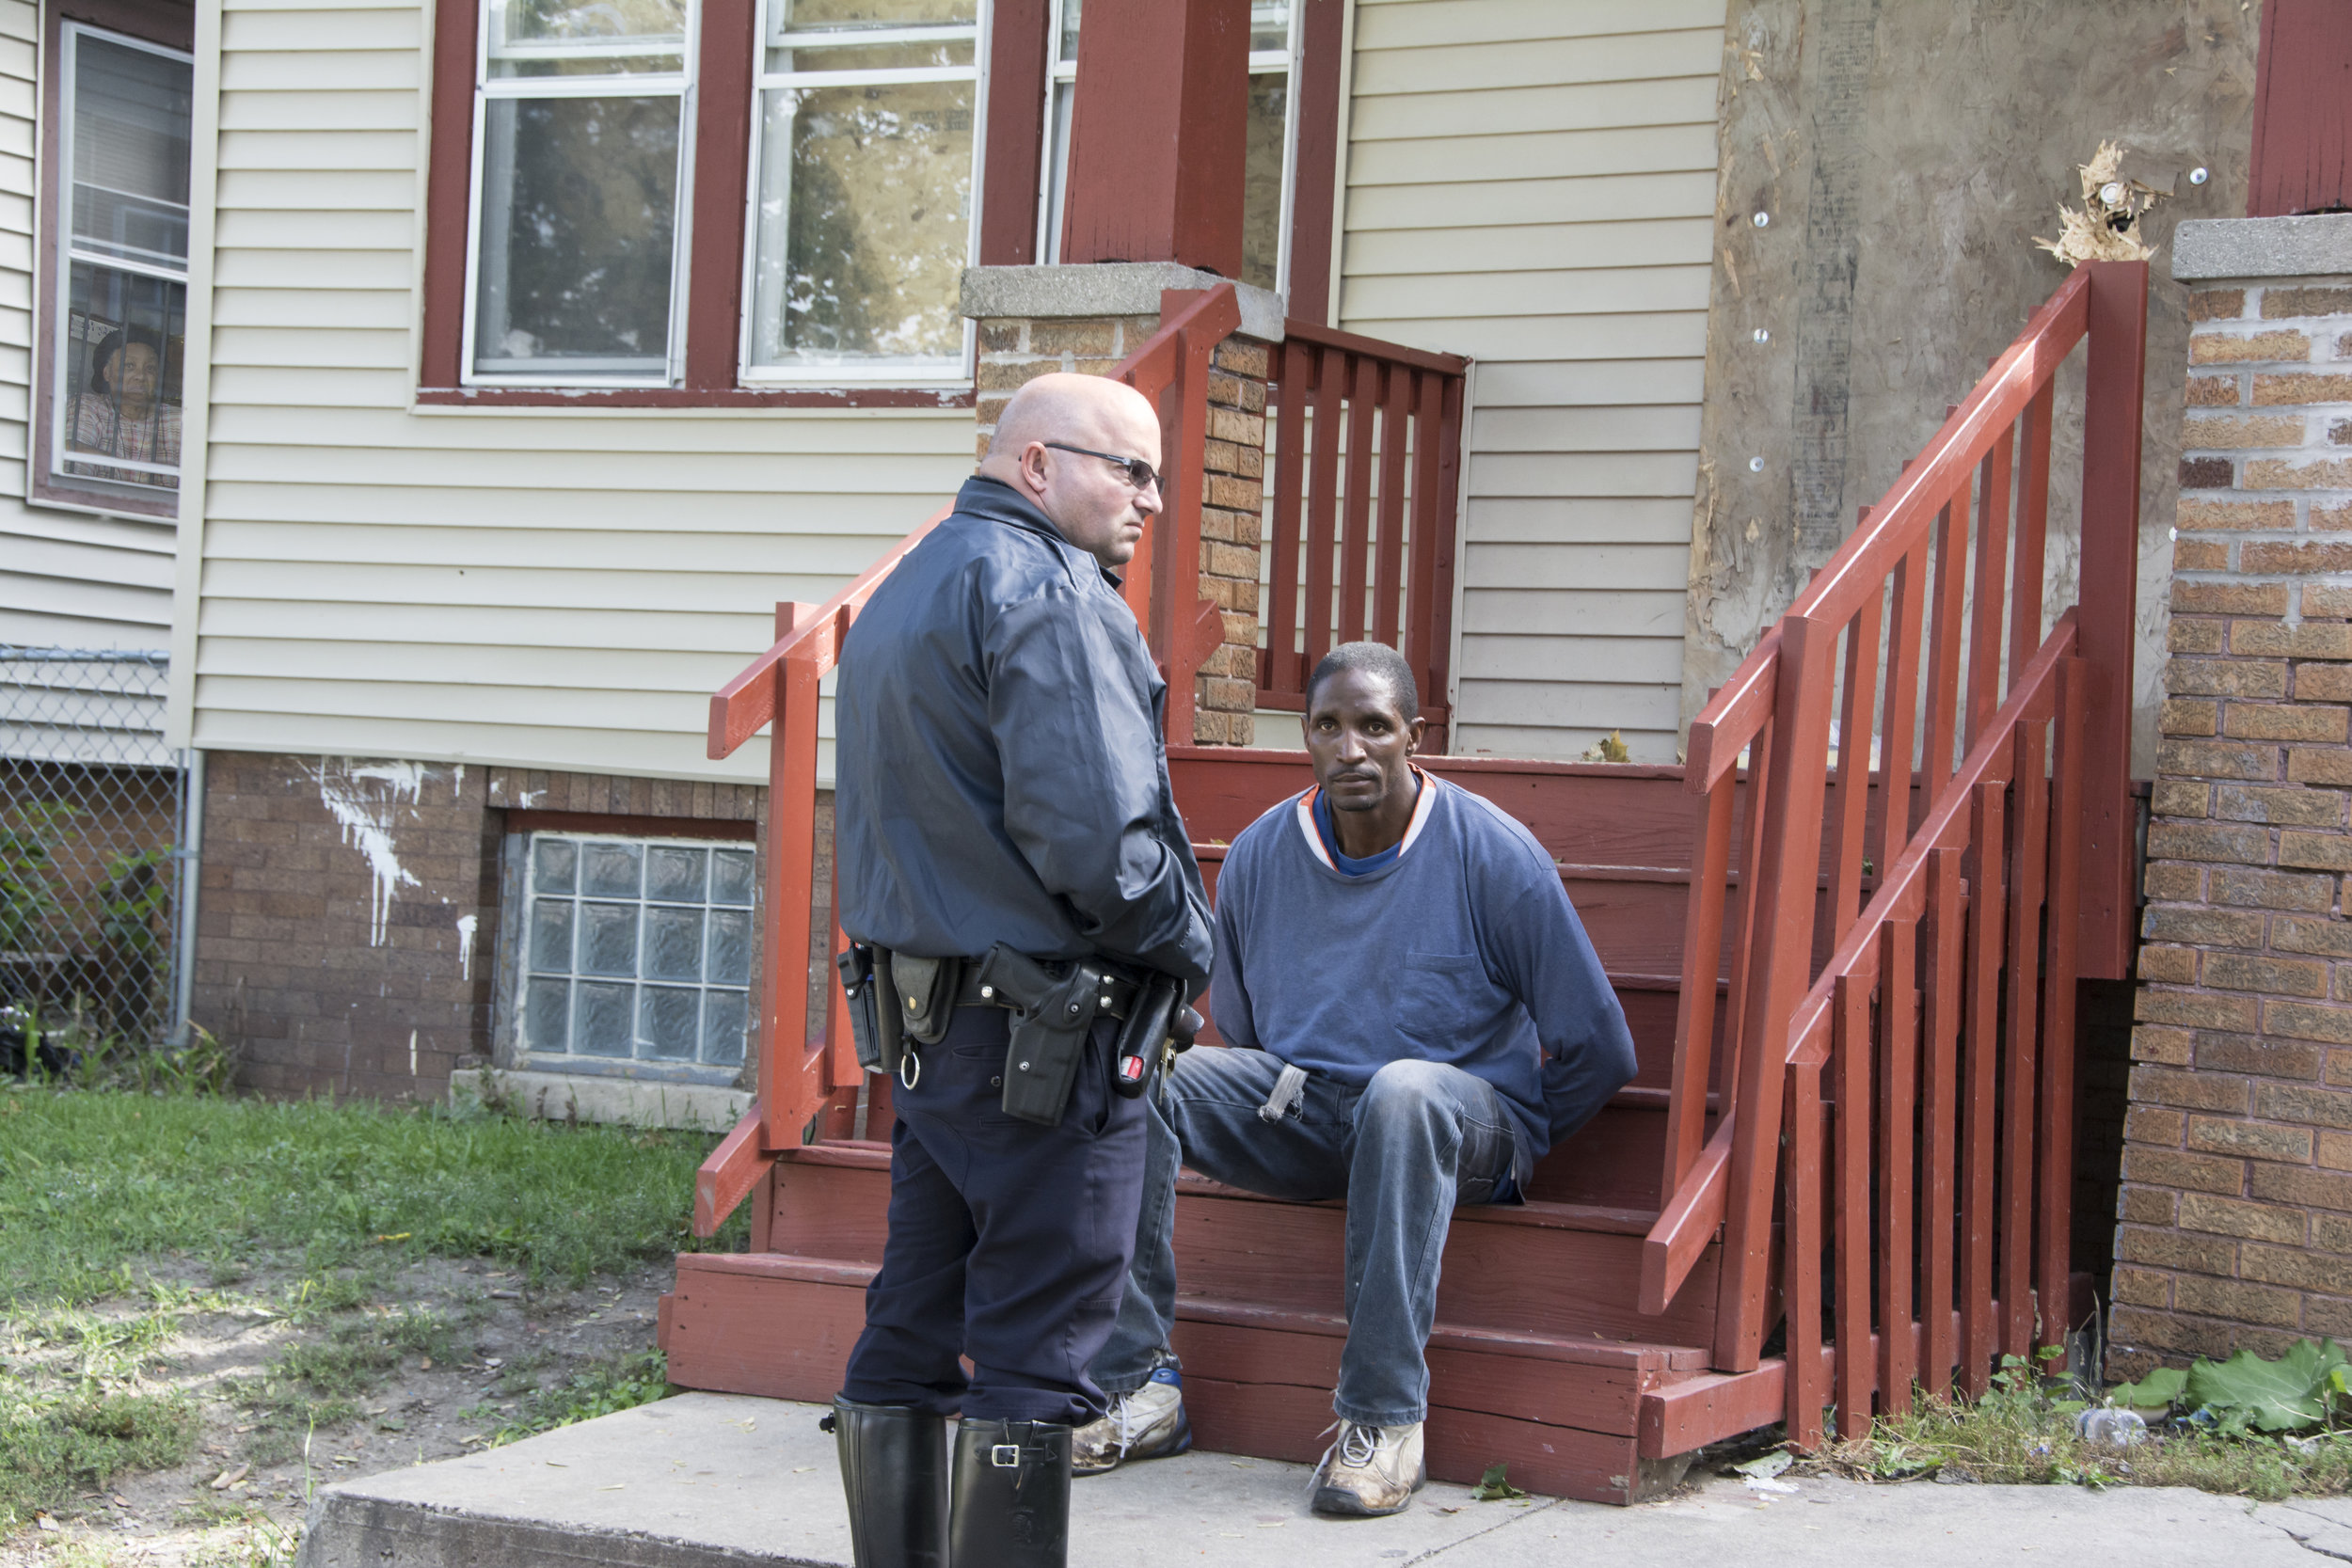 """The police call it the 1,000 yard stare, a criminal suspect's eyes glowing with hatred. This criminal sat in handcuffs on the stairs of the house he had just robbed and wrecked. The arresting officer told me, """"There are too many break-ins around here. The old people are scared."""""""